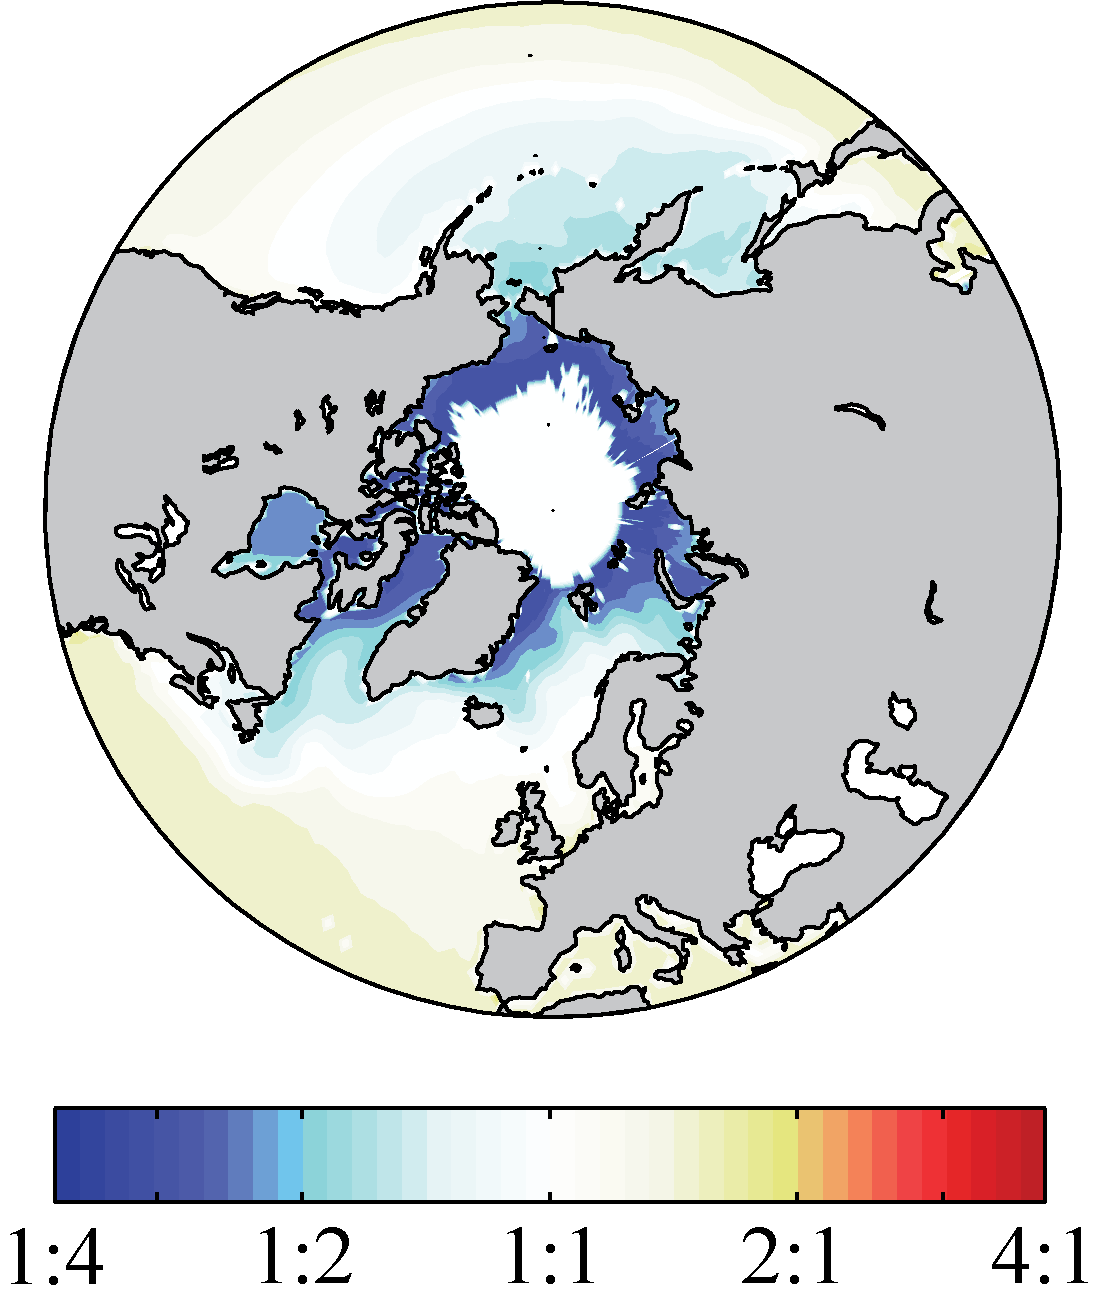 Suppression of picoplankton biomass by harsh conditions in the Arctic. Warming will likely drive a poleward expansion of these tiny cells.